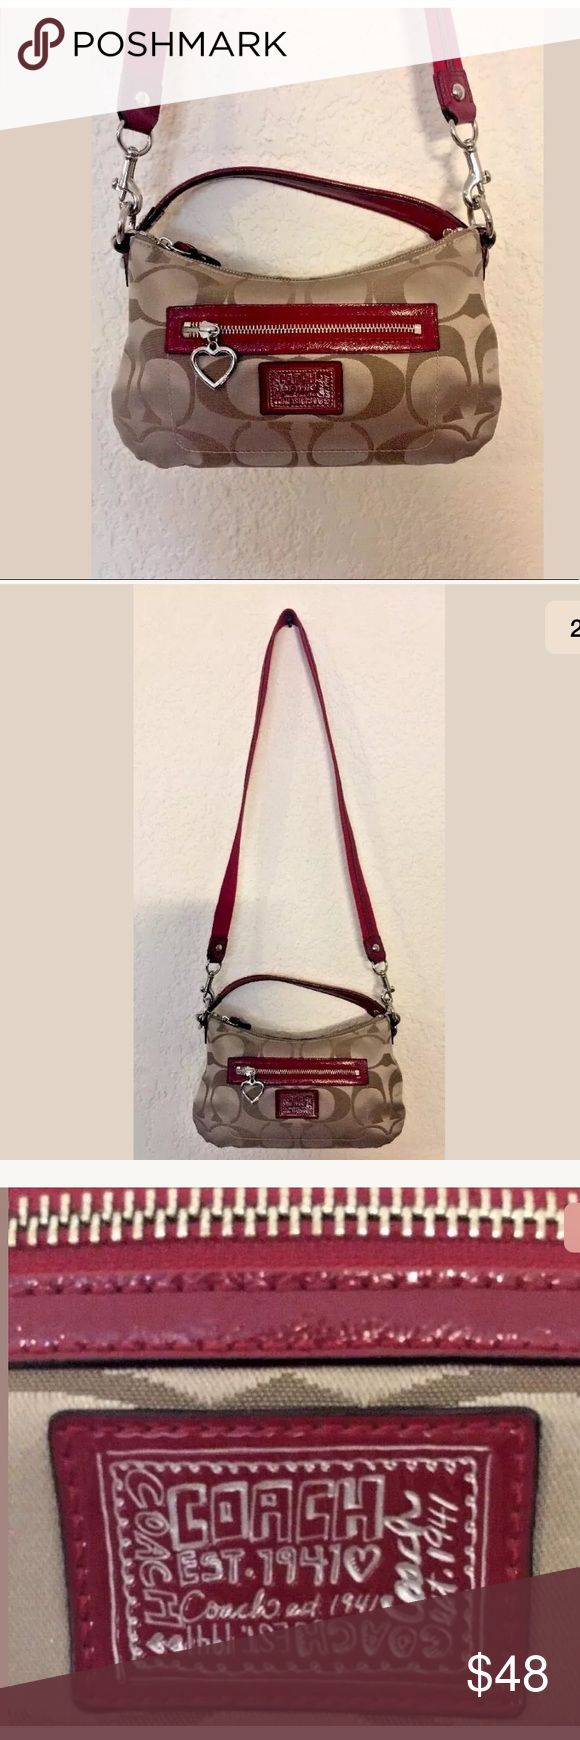 Coach poppy small crossbody with red trim Coach poppy small crossbody with red trim style H1280-F20044 Coach Bags Crossbody Bags